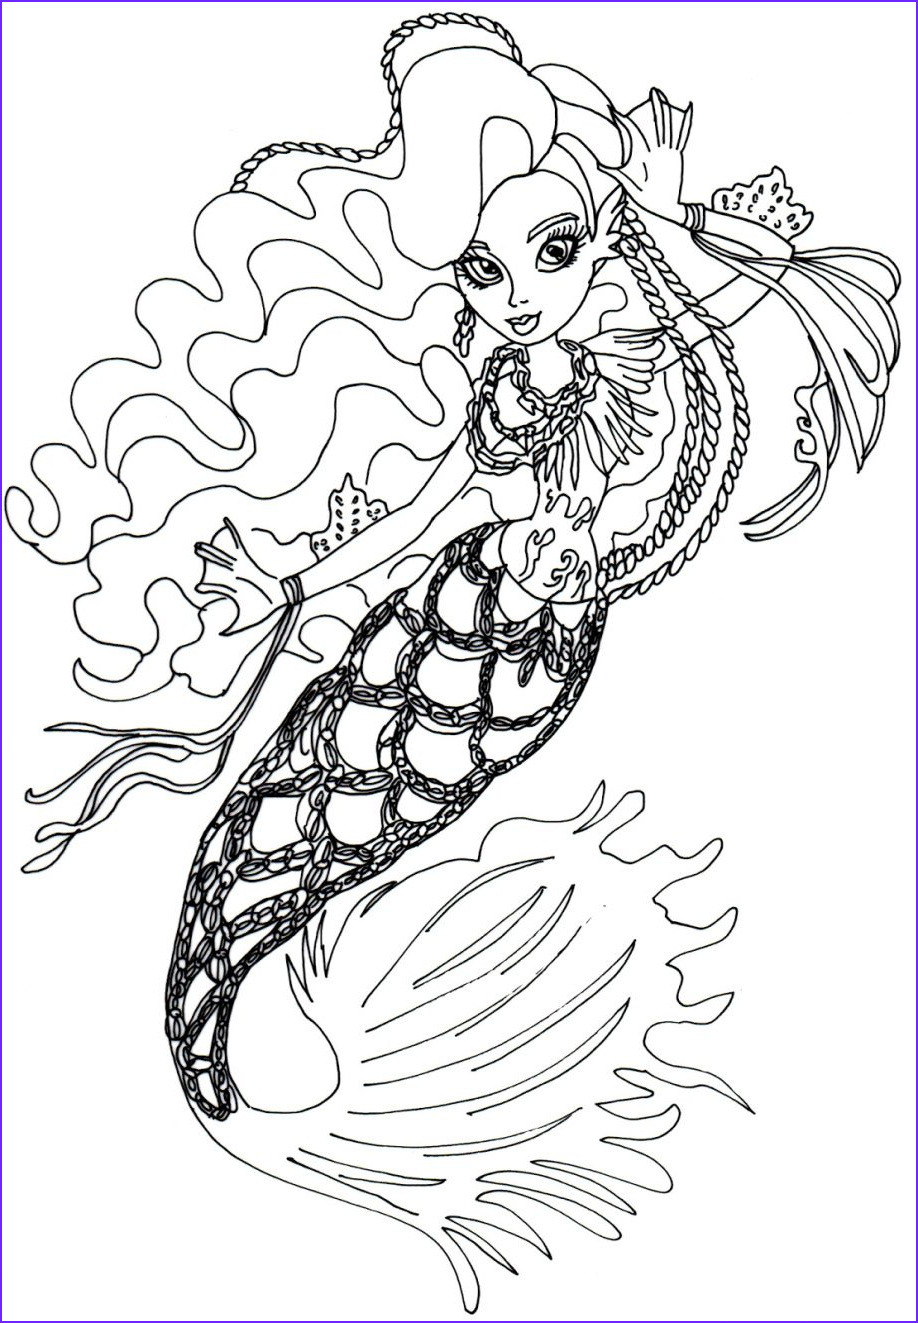 Monster High Coloring Pages Pdf Beautiful Images Monster High Coloring Pages Pdf Coloring Home